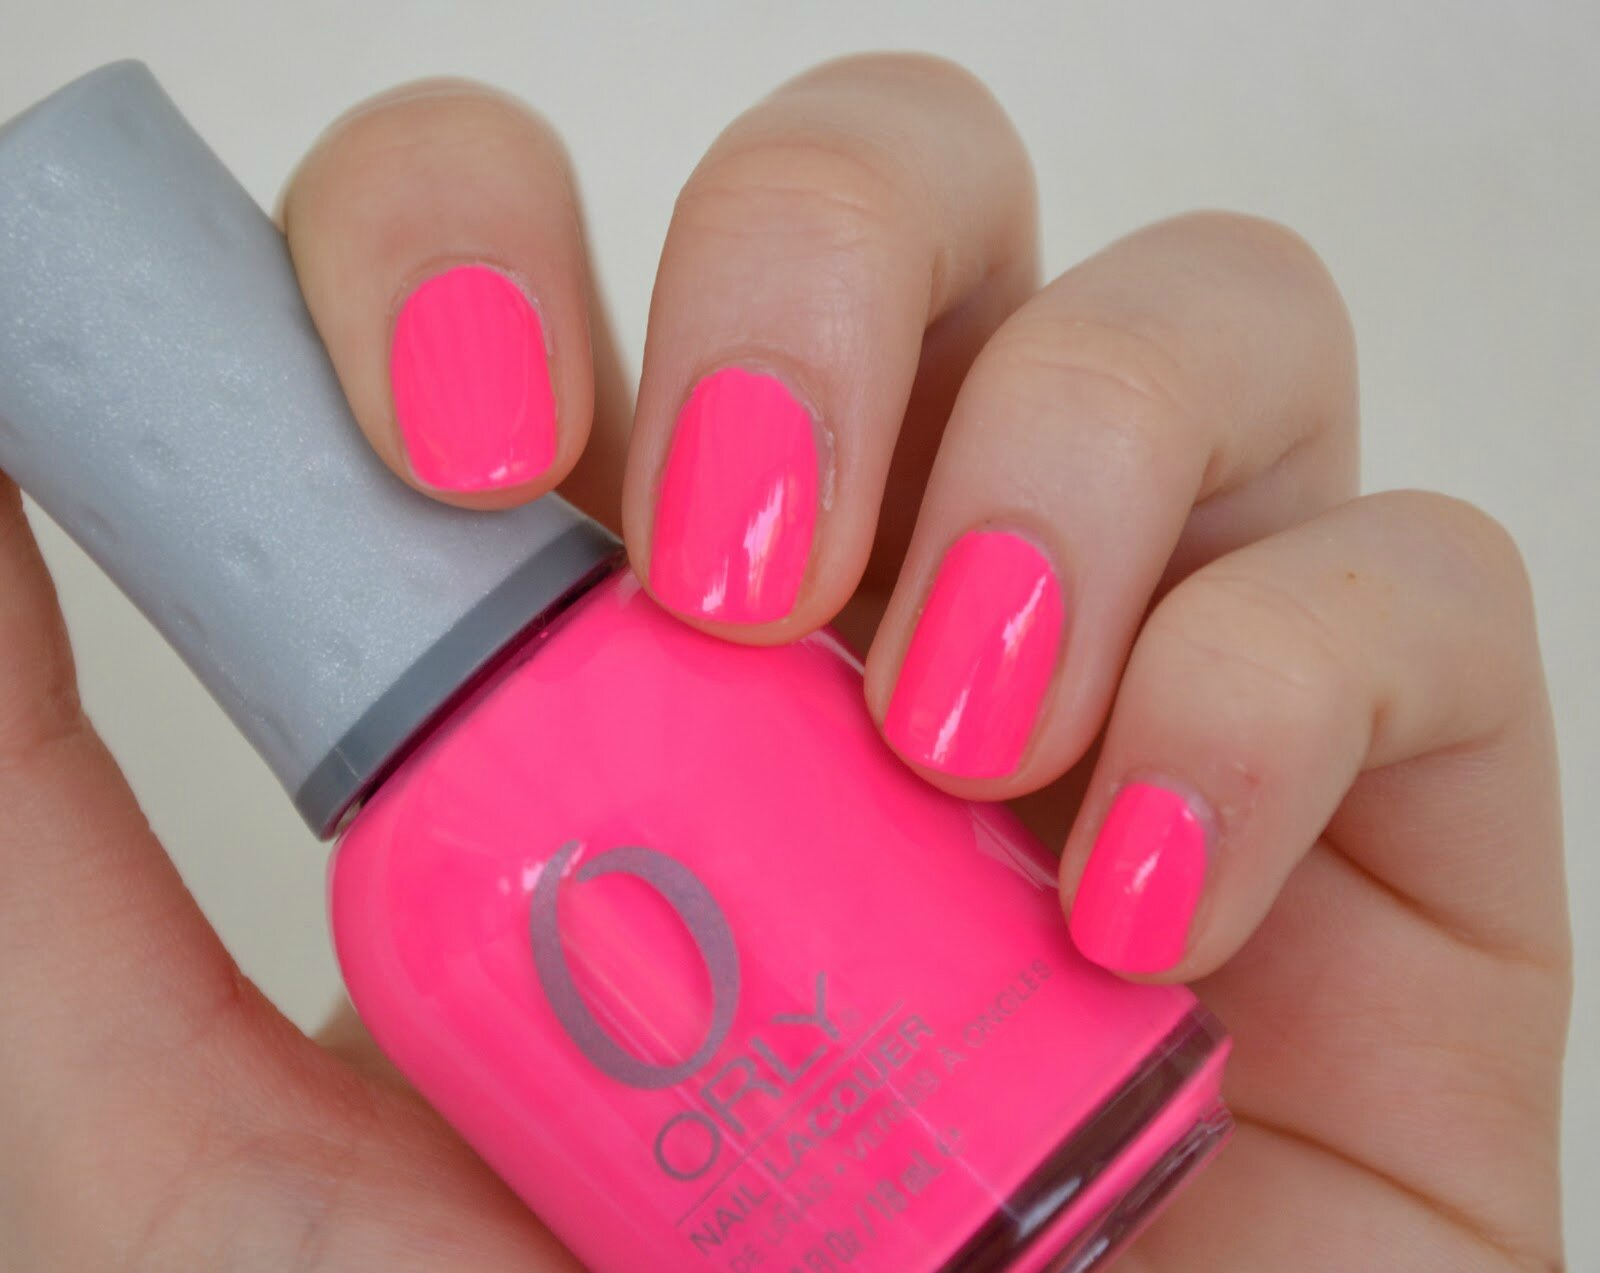 Routine ongles summer 2014 parlons du nude la page des filles - Ongle rose fluo ...